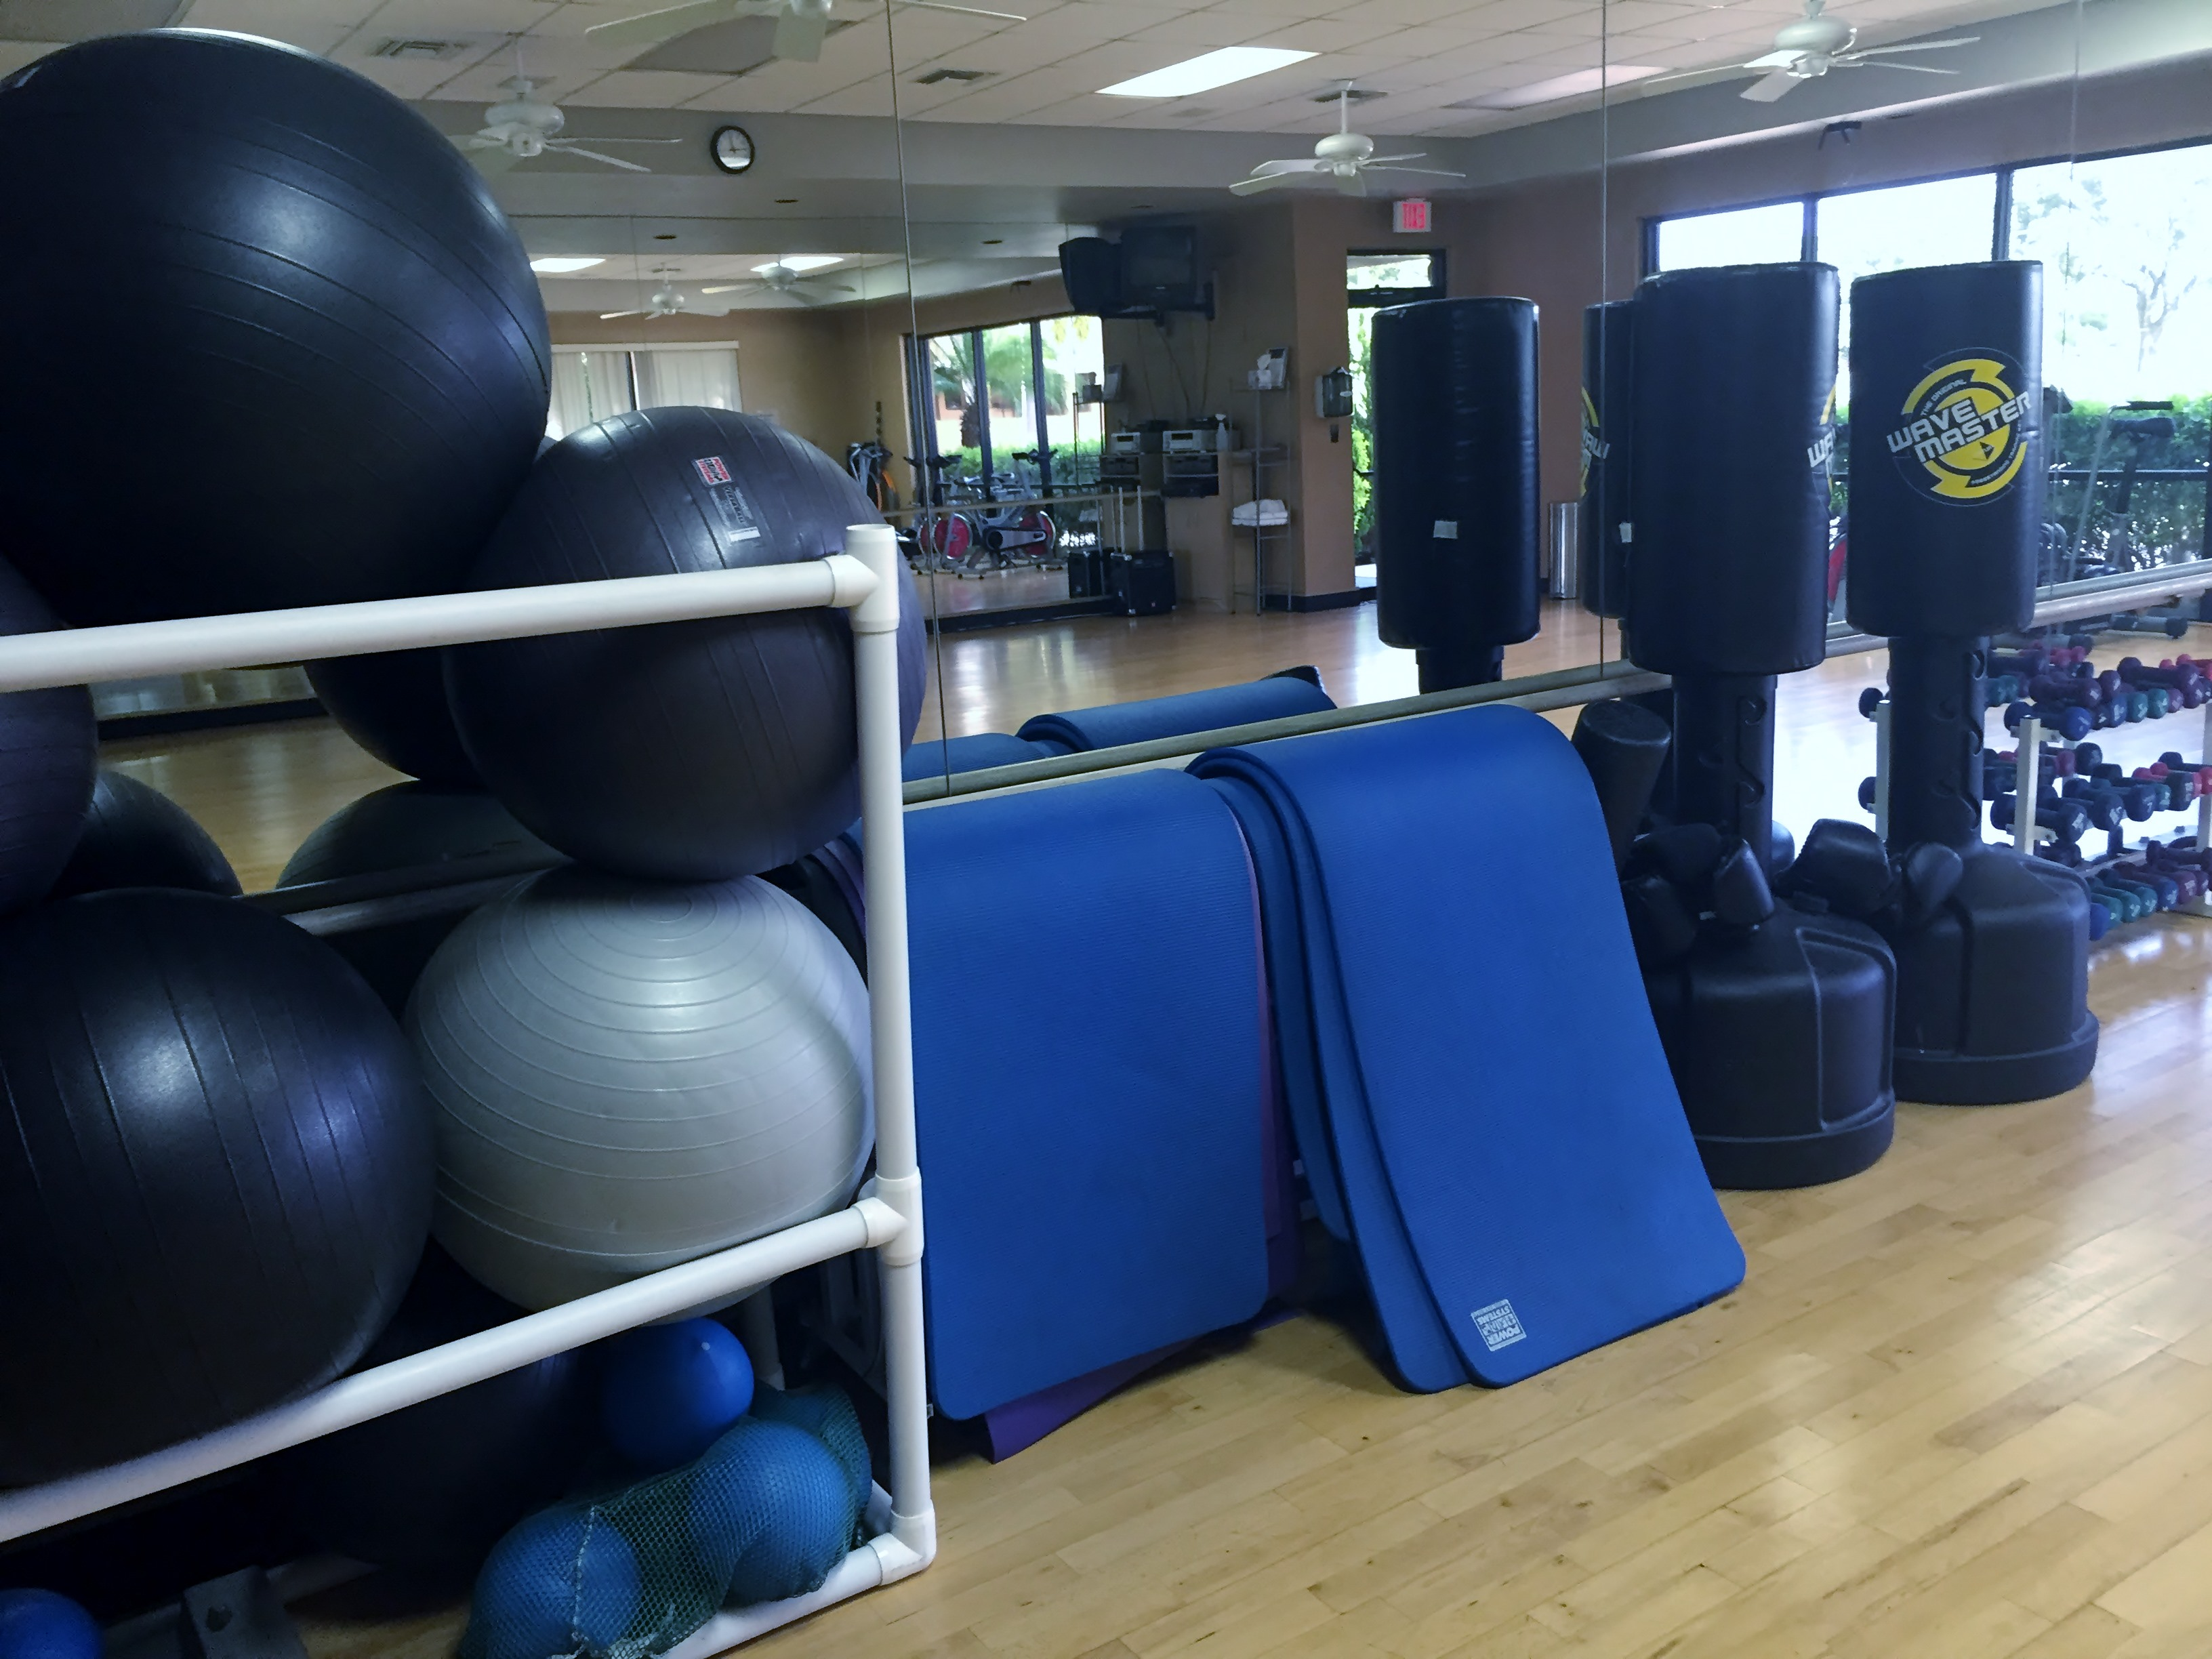 Group and personal training studio